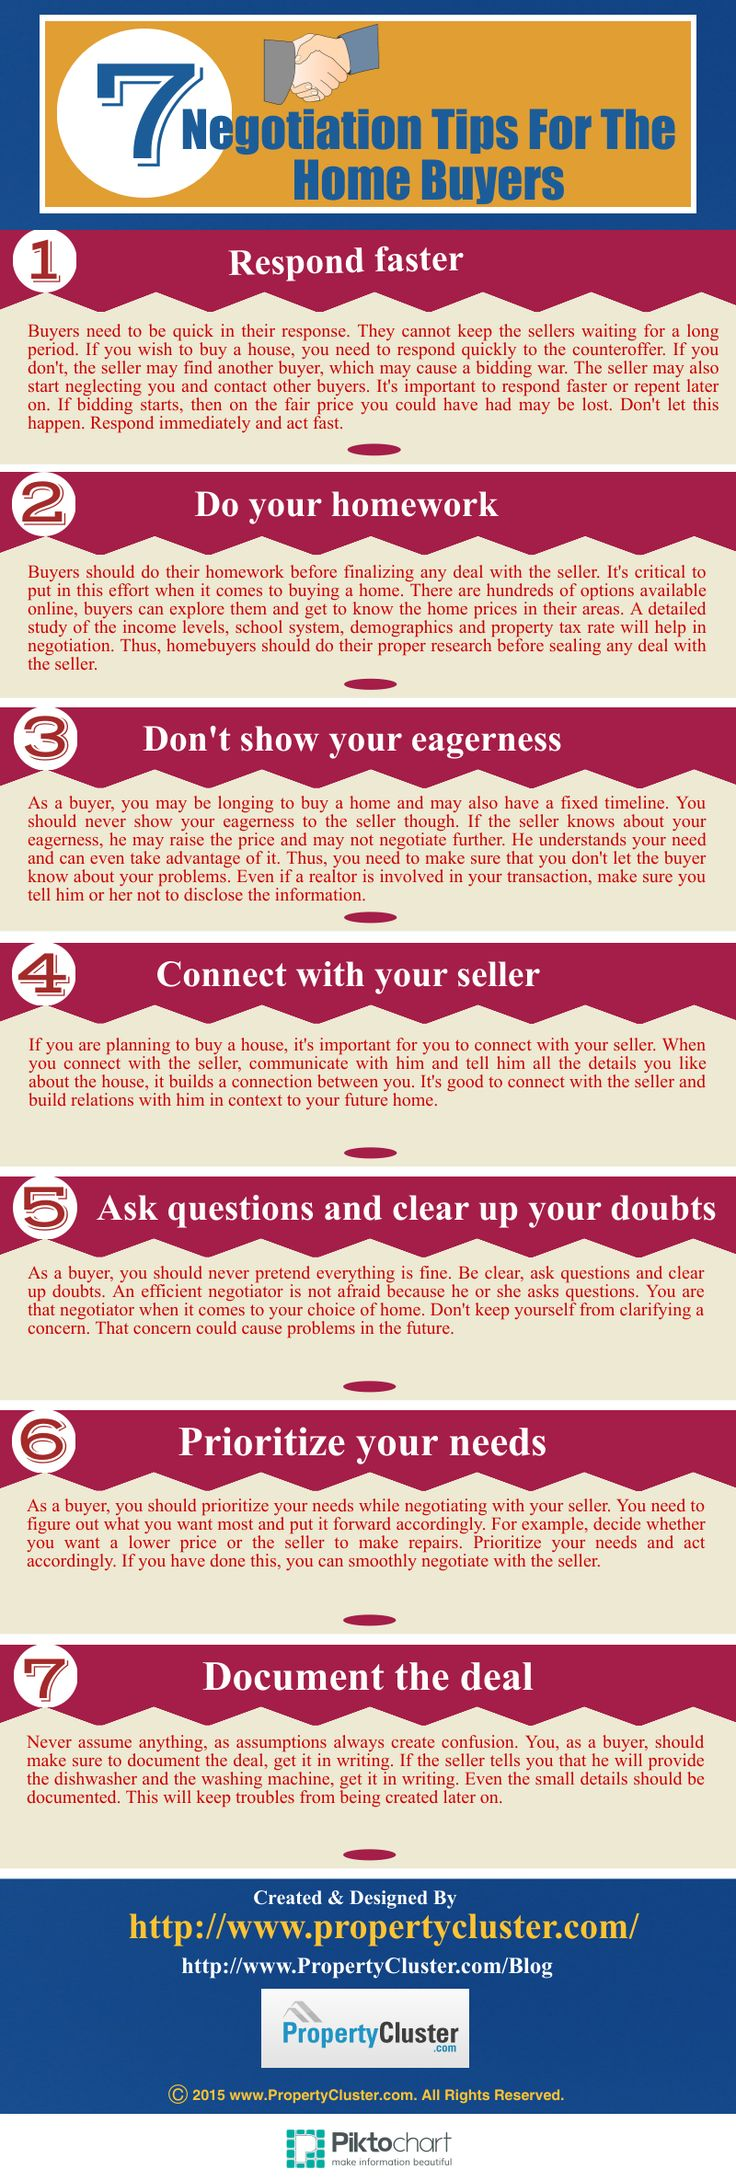 Here we offer some negotiation tips for the home buyers to simplify the deal-making process and help them strike a winning deal.